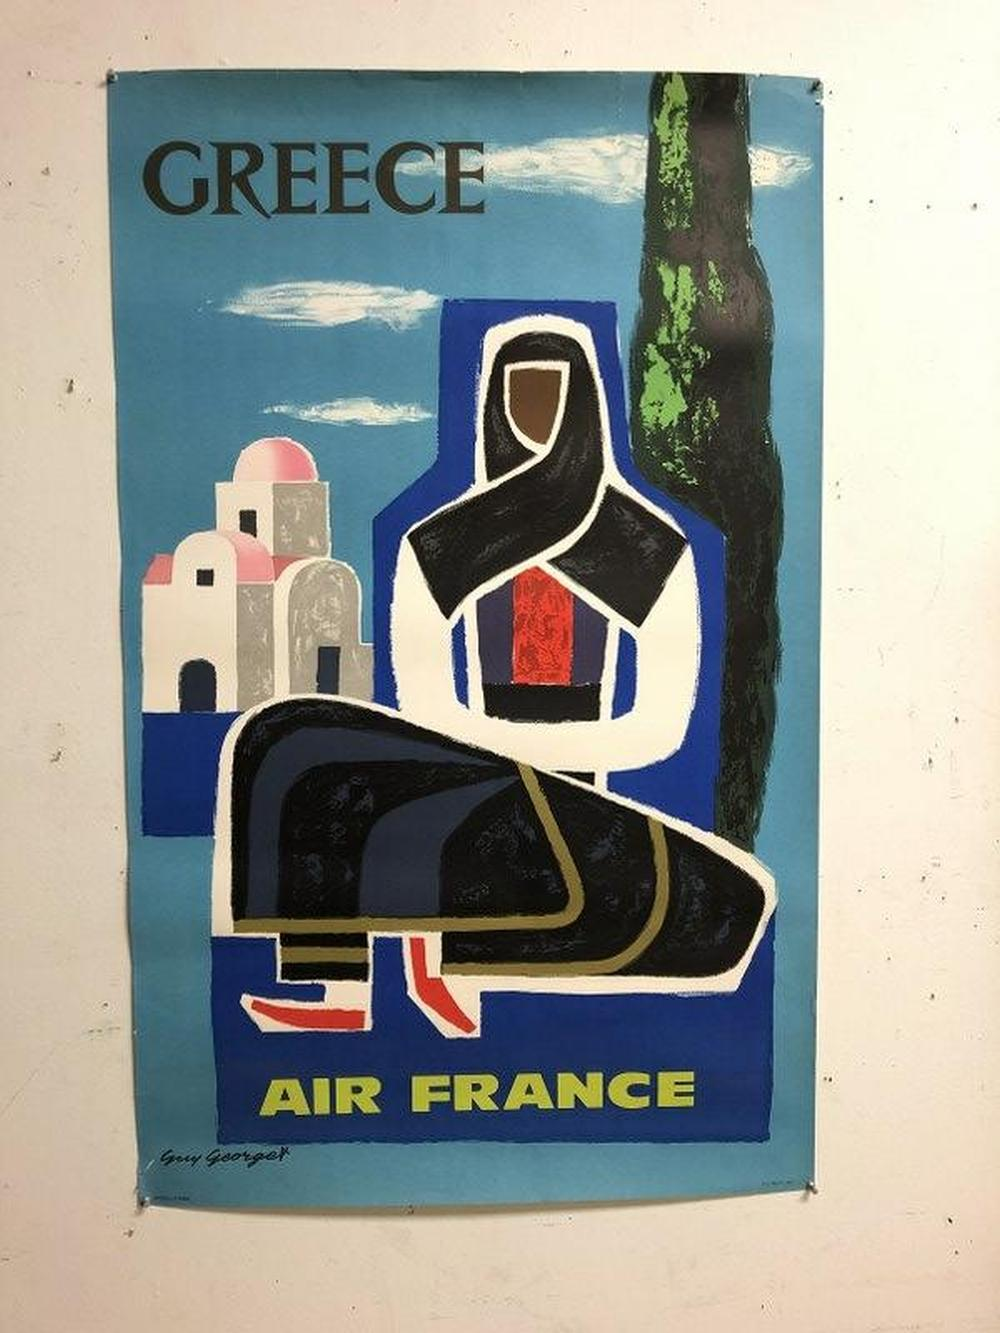 AIR FRANCE GREECE TRAVEL POSTER, 1963, HAS SOME BORDER